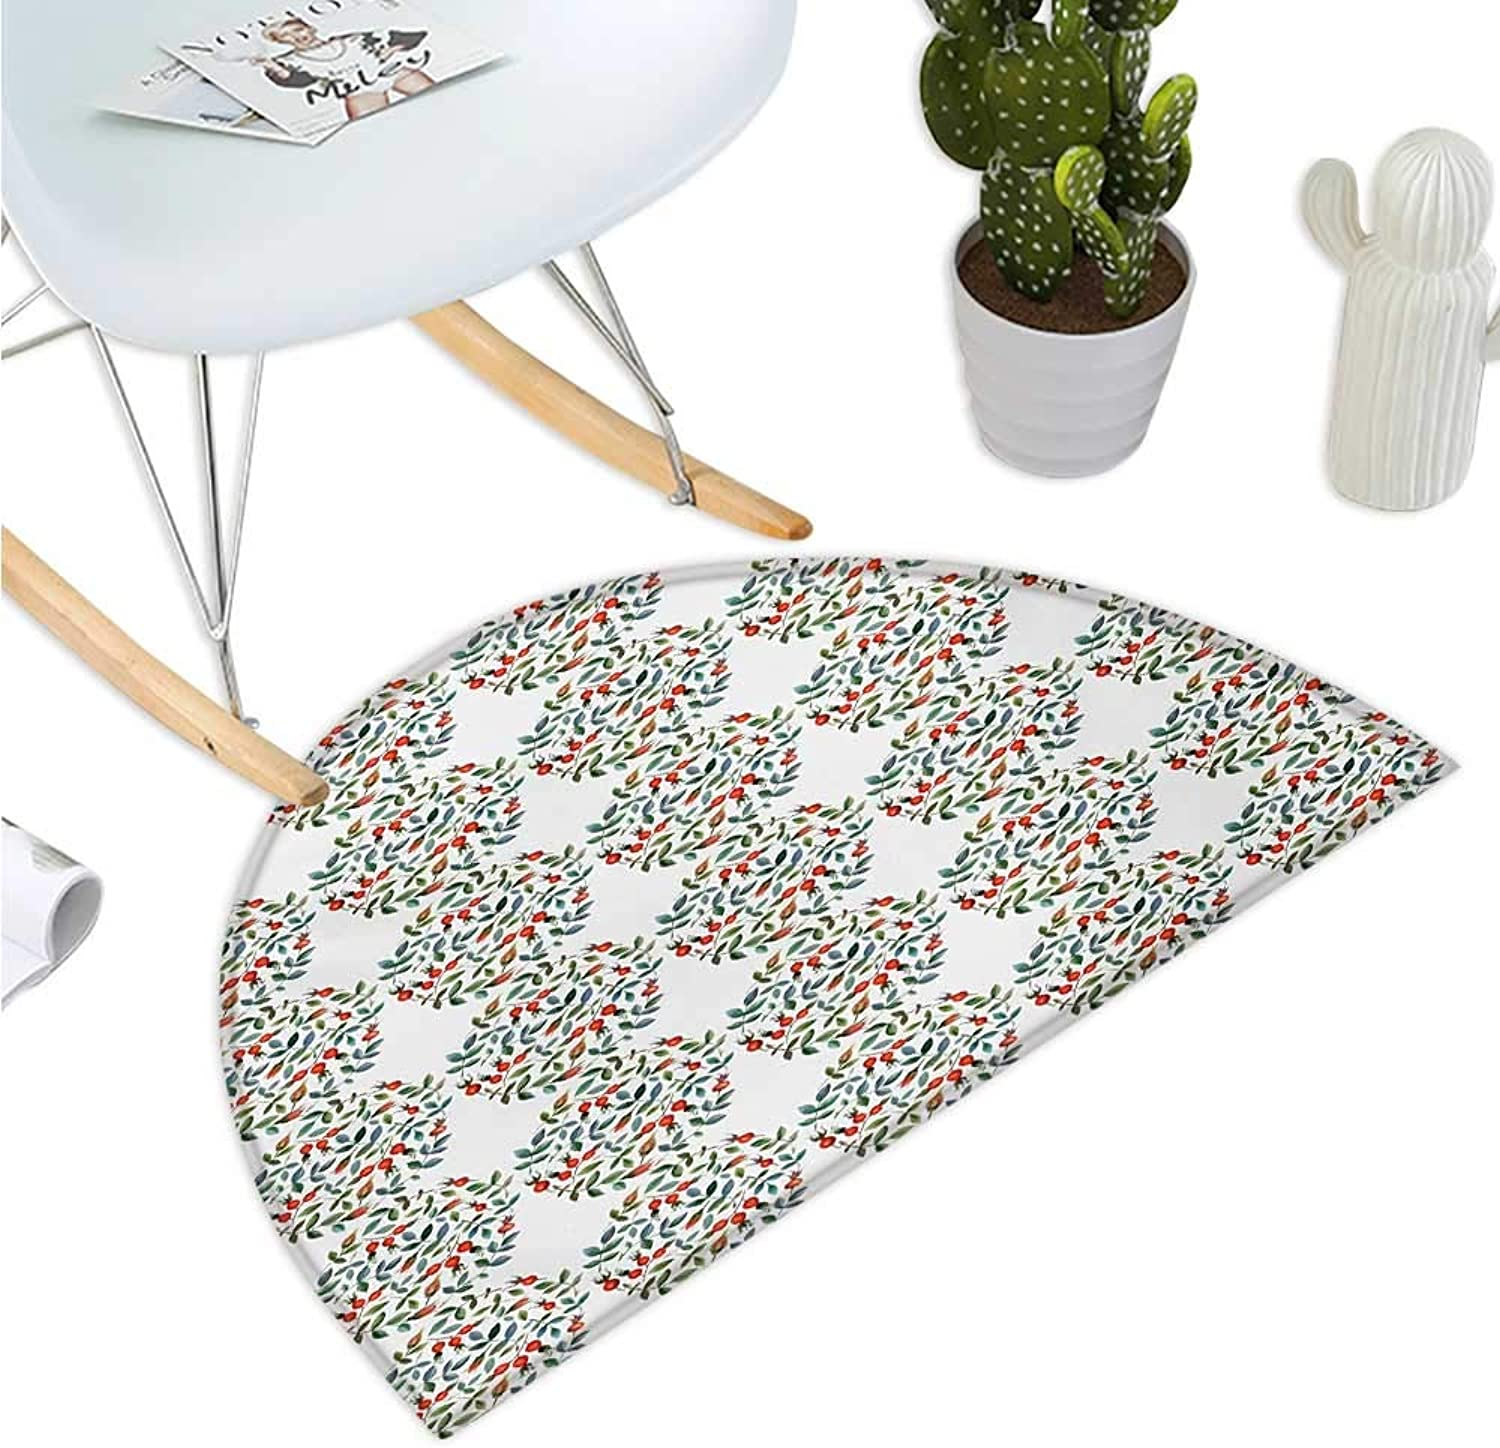 Nature Semicircular Cushion Watercolor Painting Style Berry Fruit and Green Leaves in Circles Romantic Rustic Entry Door Mat H 39.3  xD 59  Multicolor